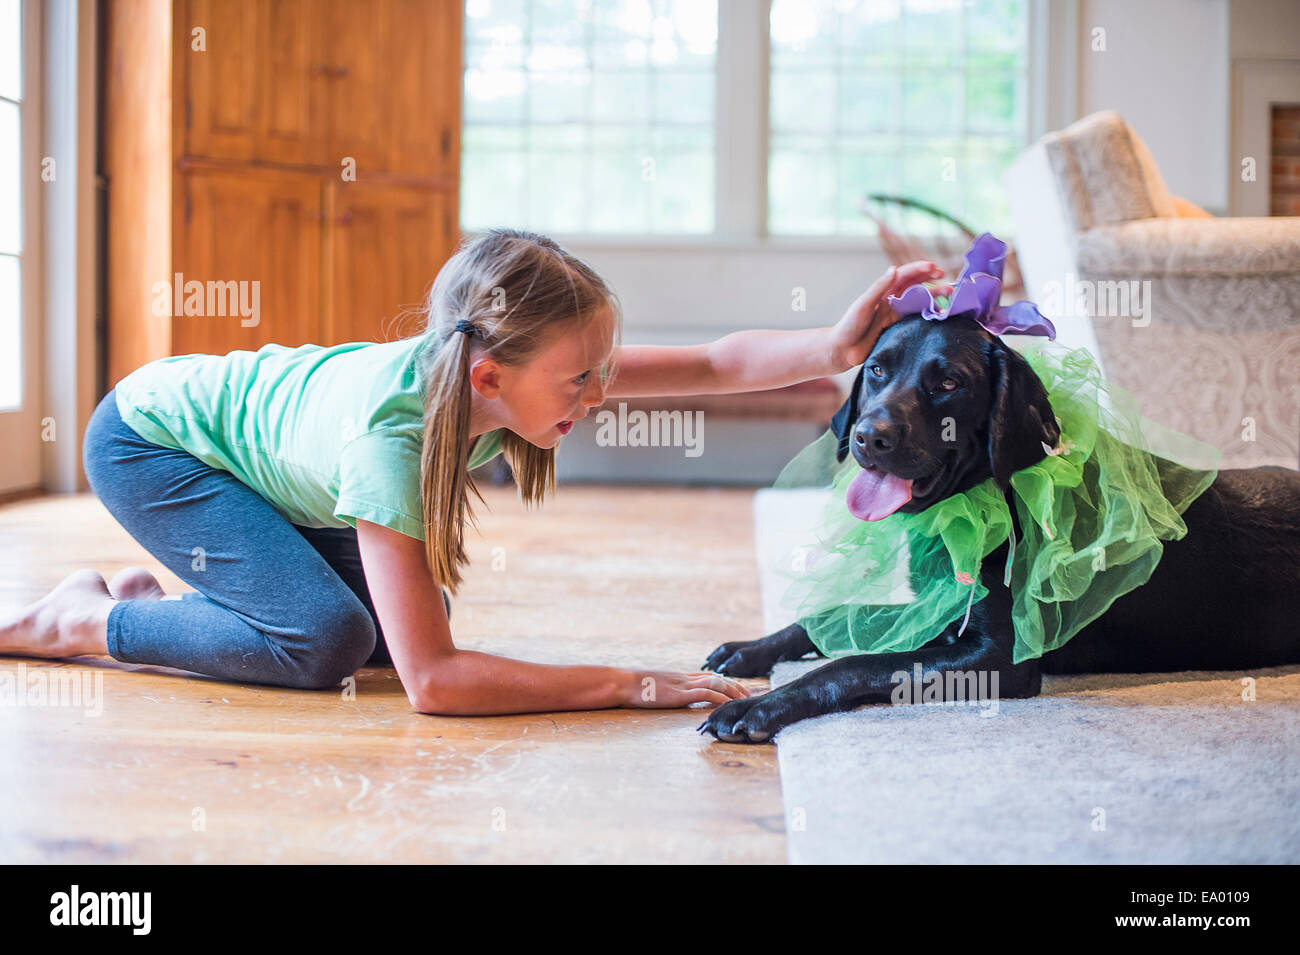 Young girl playing dress up with pet dog - Stock Image